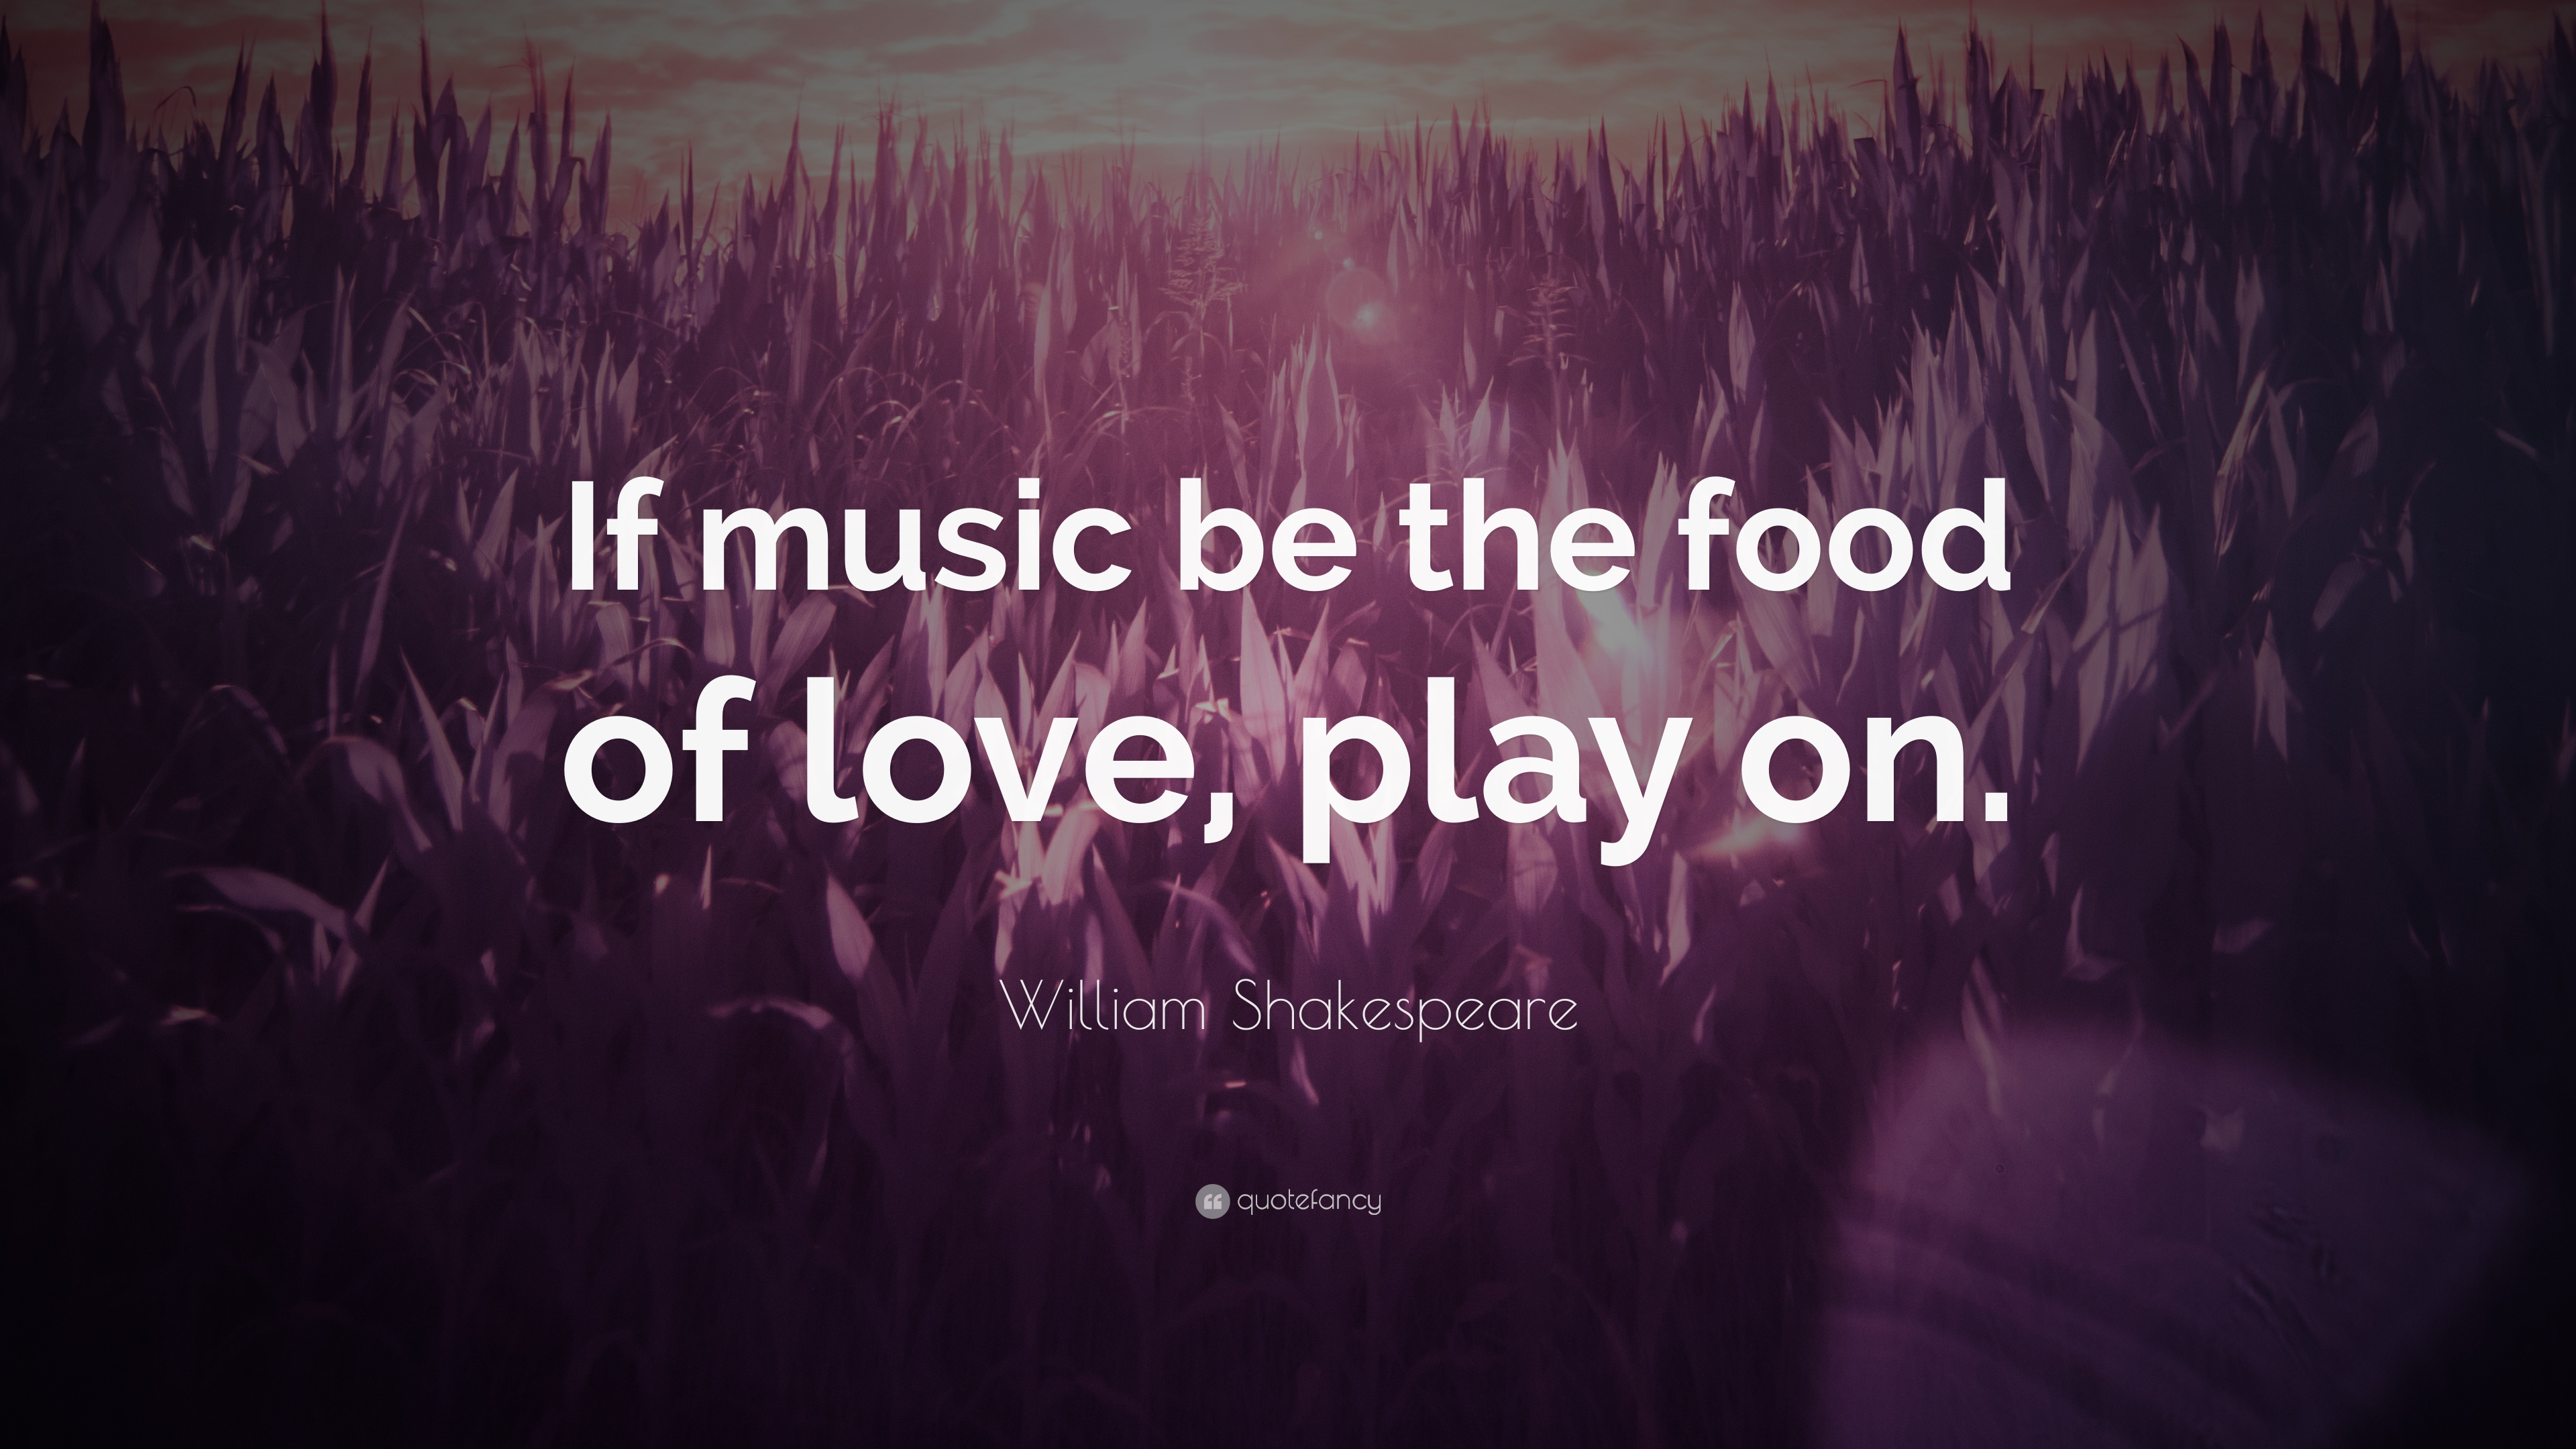 Cool Wallpaper Music Food - 28264-William-Shakespeare-Quote-If-music-be-the-food-of-love-play-on  Best Photo Reference_365965.jpg